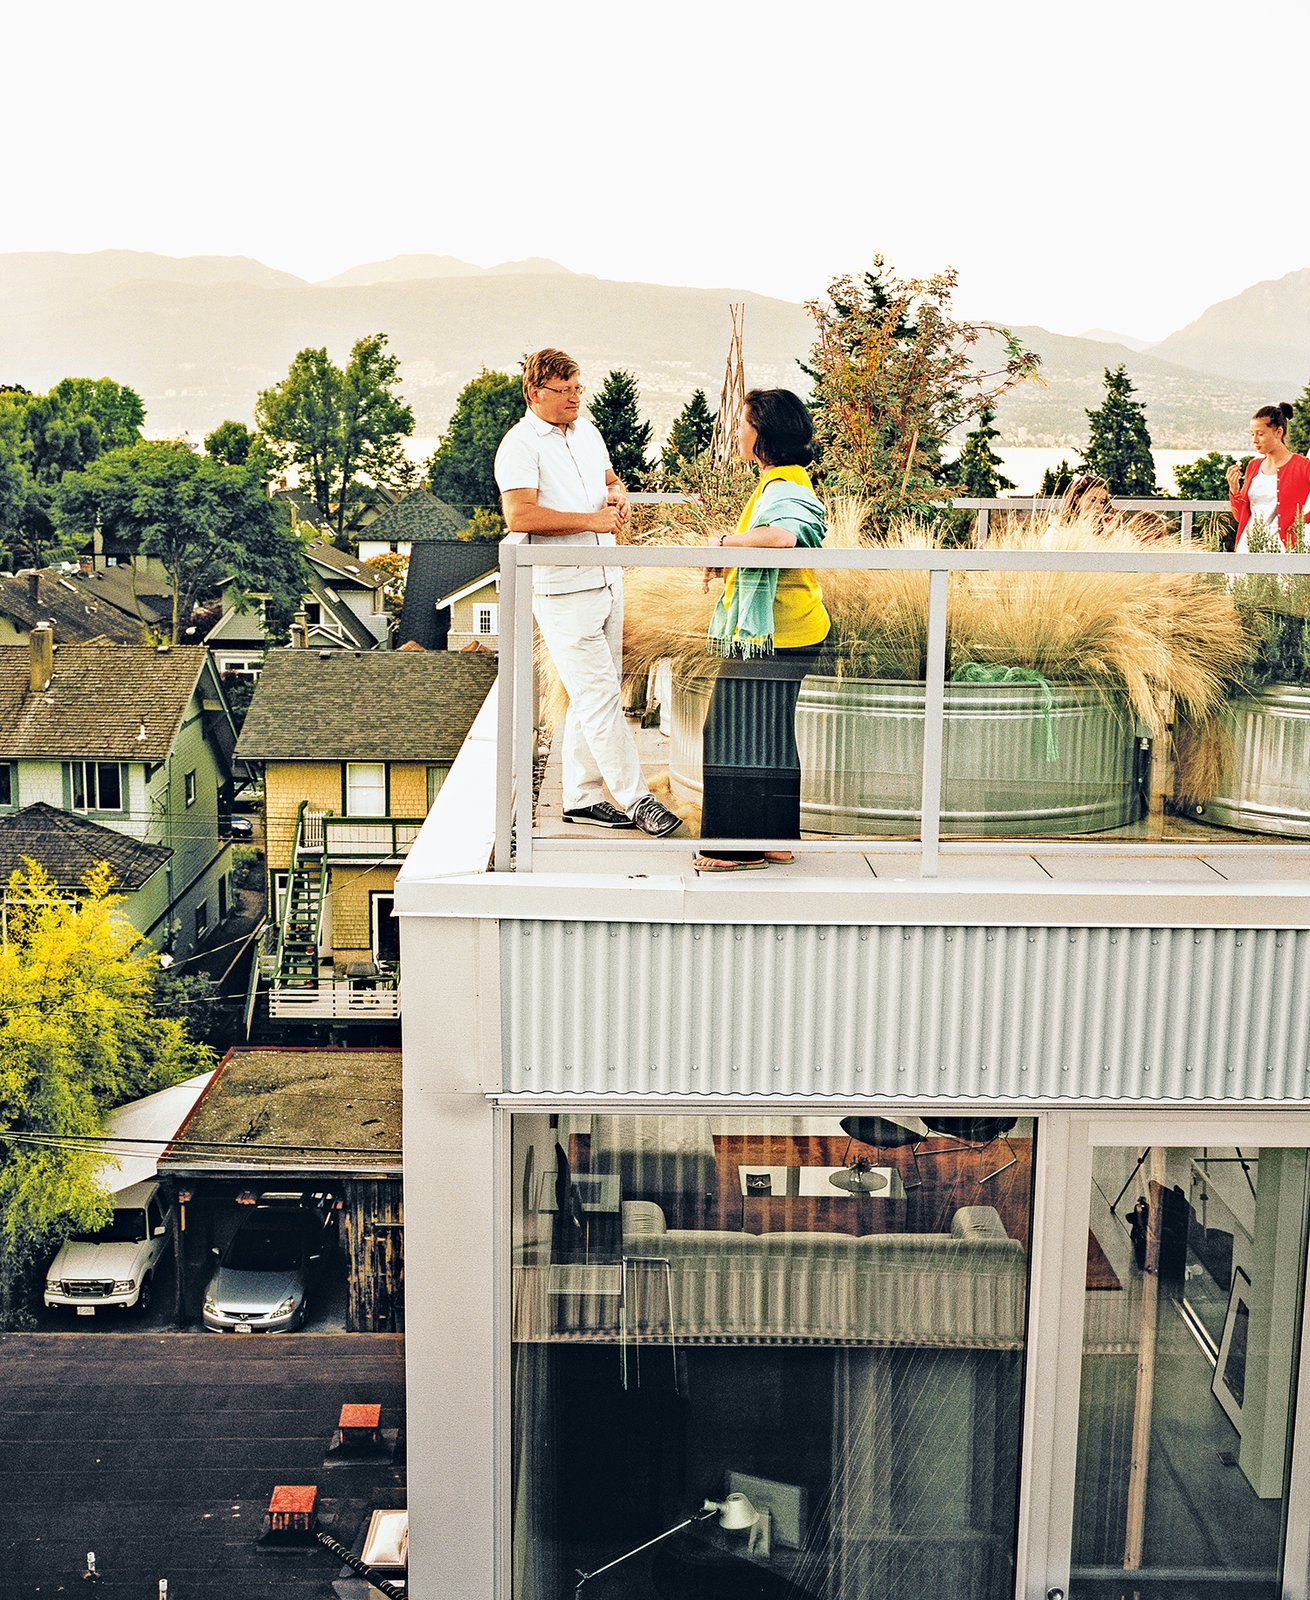 Each of the residences has outdoor space attached to it; the family's unit has a roof deck. In   lieu of a green roof is a galvanized tub filled with grasses—a collaboration between the architects   and landscape architecture firm space2place.  Modern Spaces in the Pacific Northwest by William Lamb from A Modern Multiunit Prefab Prototype in Vancouver